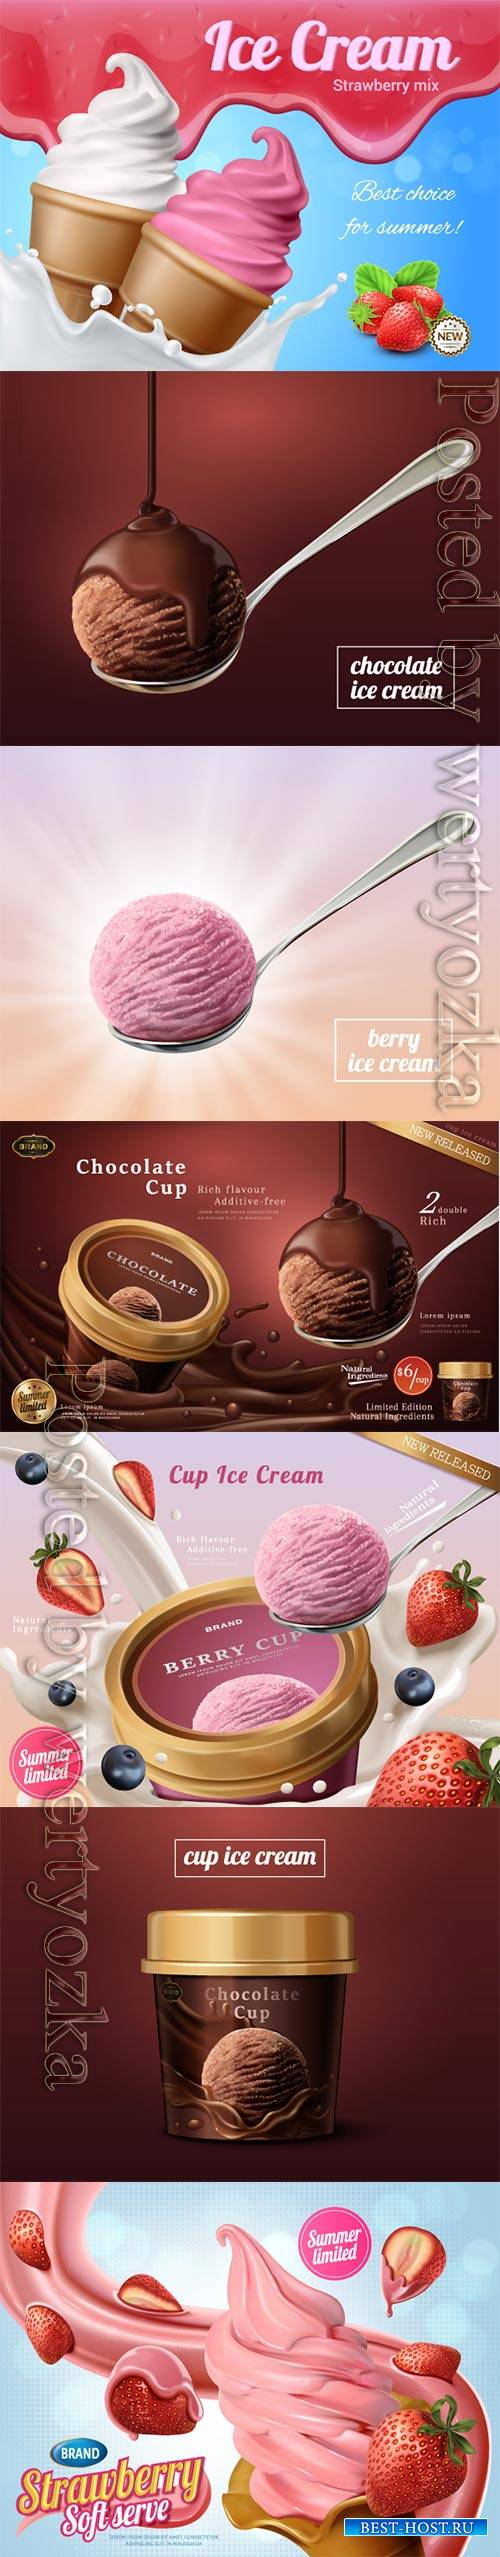 Ice cream advertisement vector collection